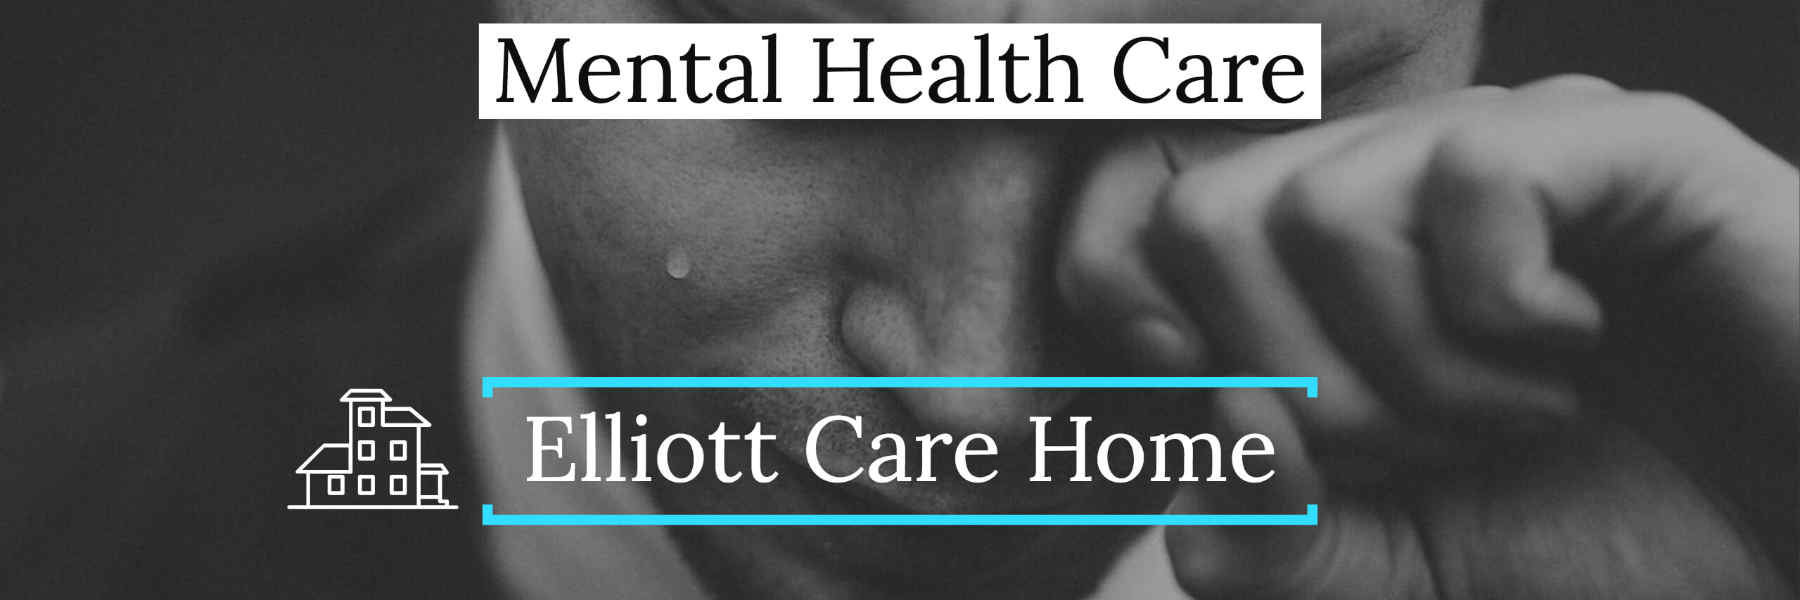 Elliott Mental Health Residential care Home Leicester Banner